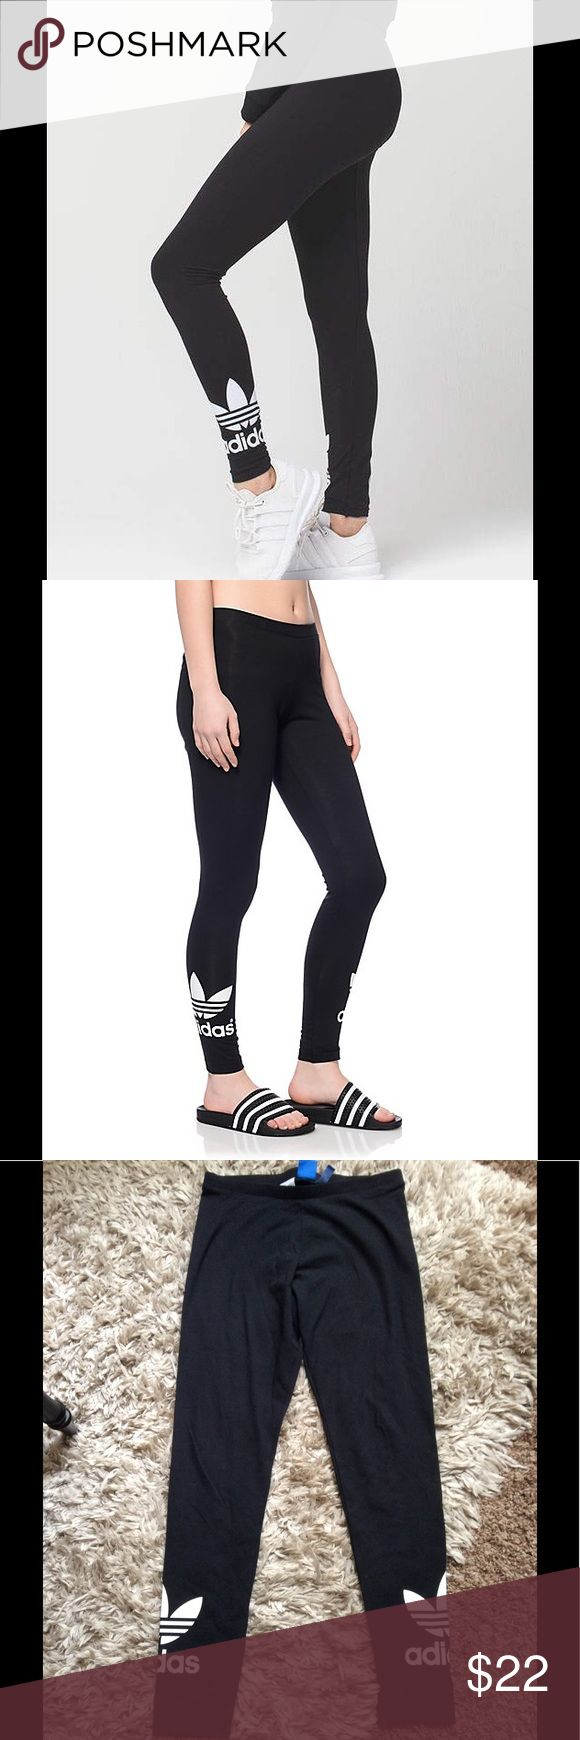 🆕 Adidas Leggings Great leggings for workout or lounging. No fading and no stains or rips. adidas Pants Leggings